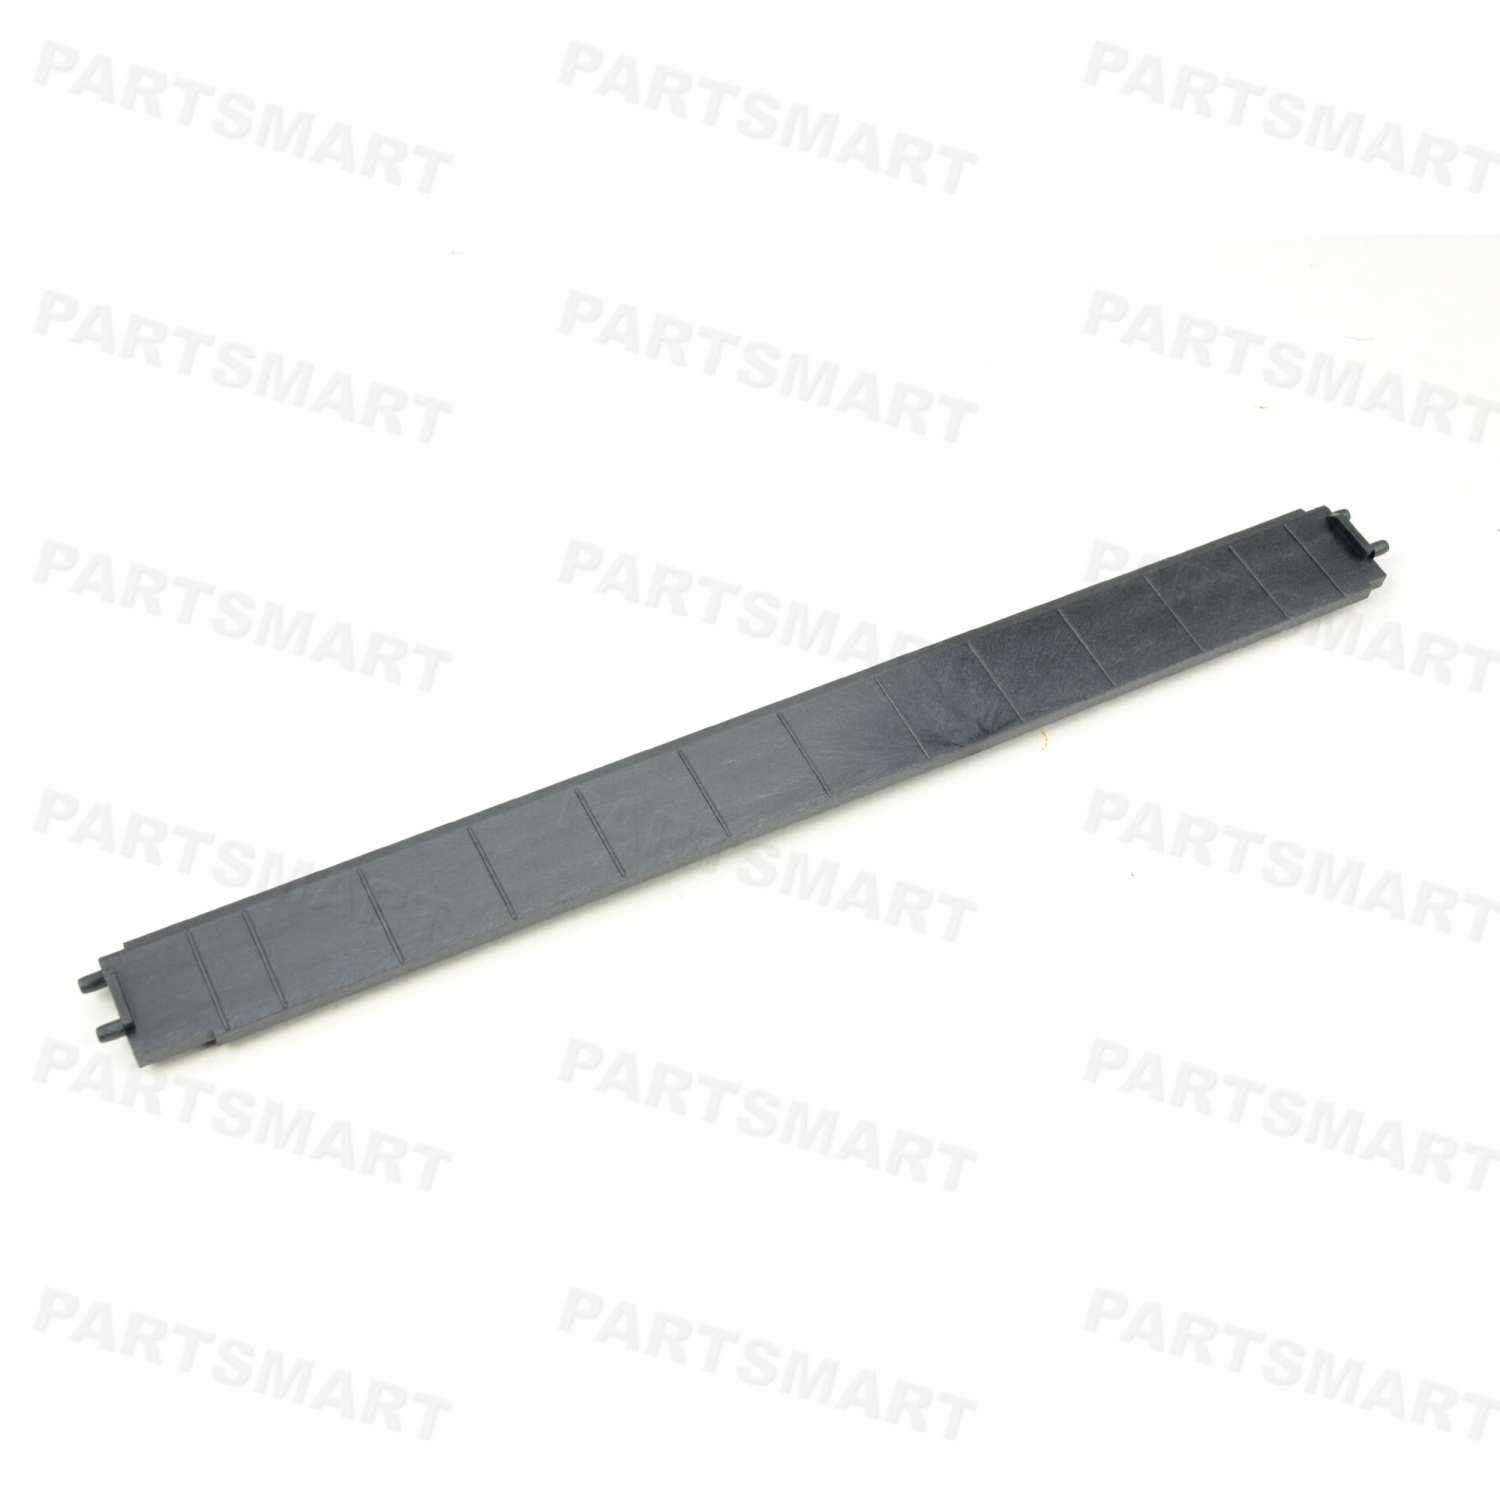 12G0350 Guide, Fuser Paper Entry for Lexmark Optra M41x